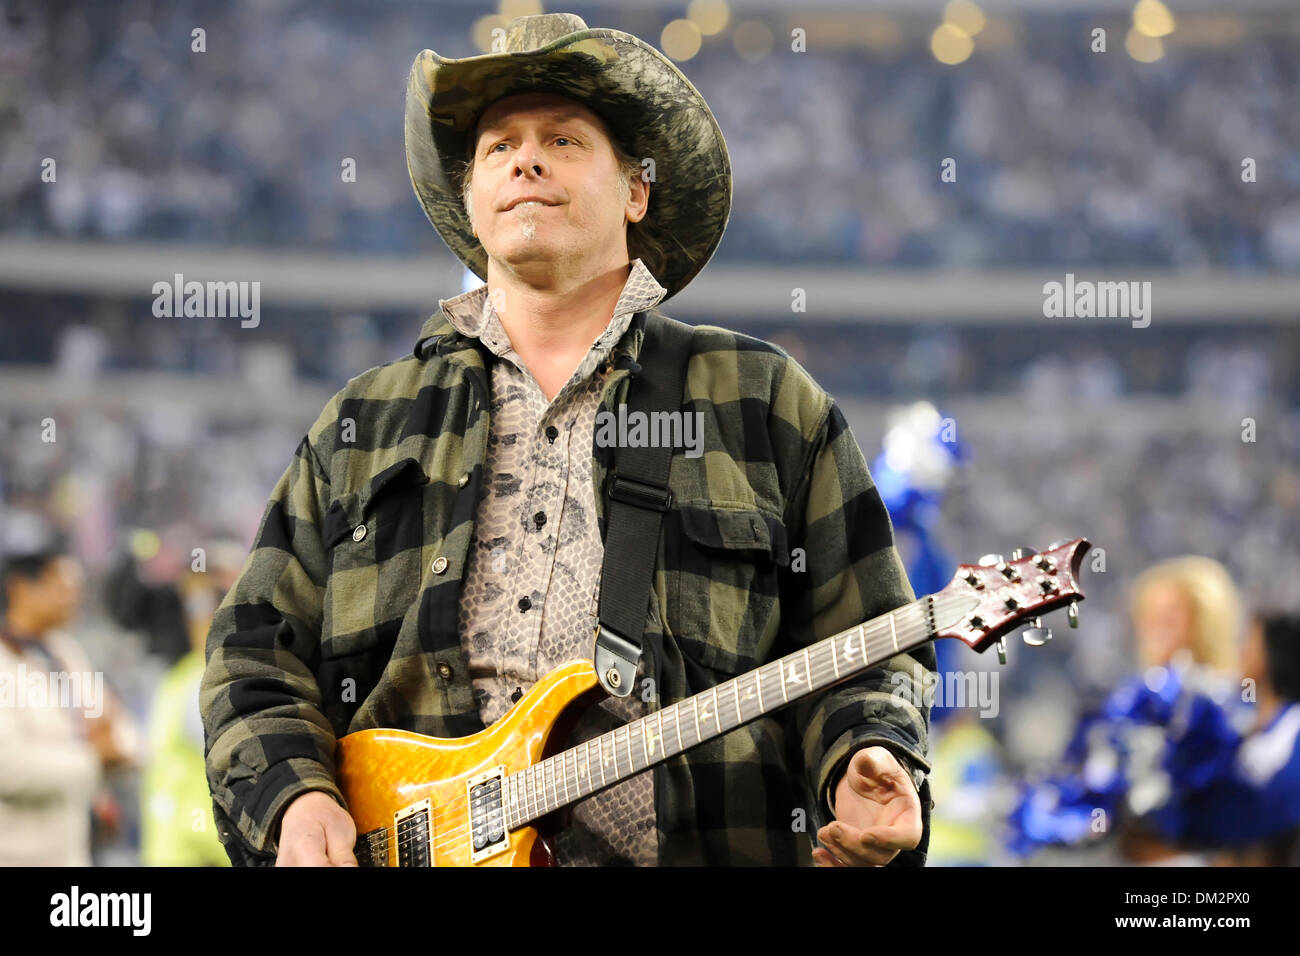 691a783b9 Ted Nugent Stock Photos & Ted Nugent Stock Images - Alamy